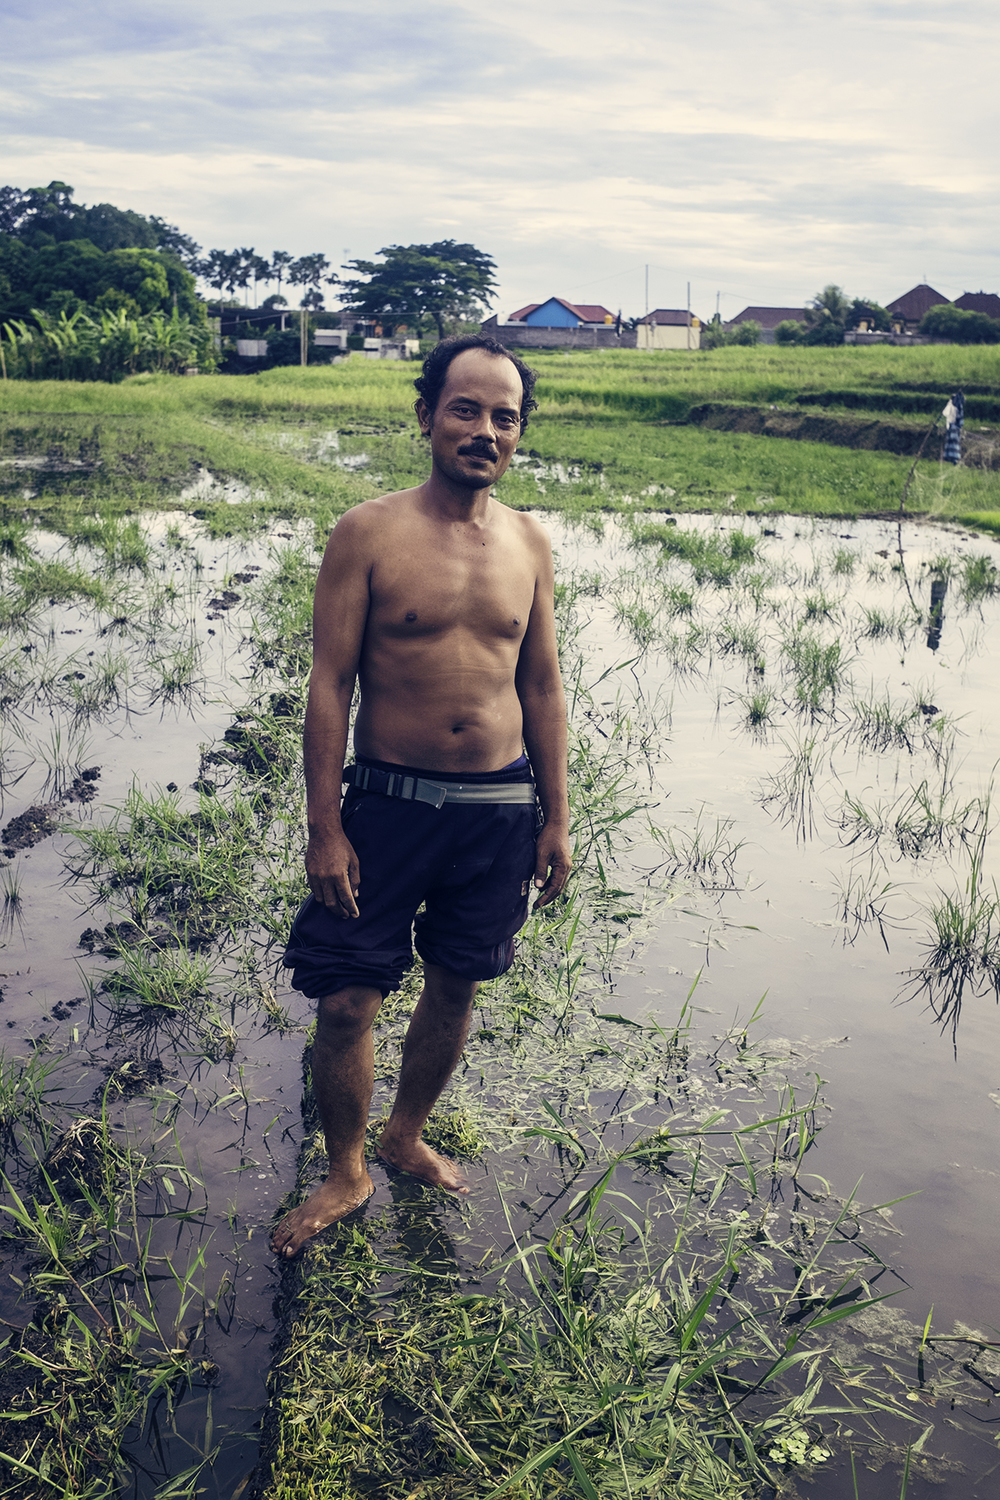 Farmer friend, Canggu